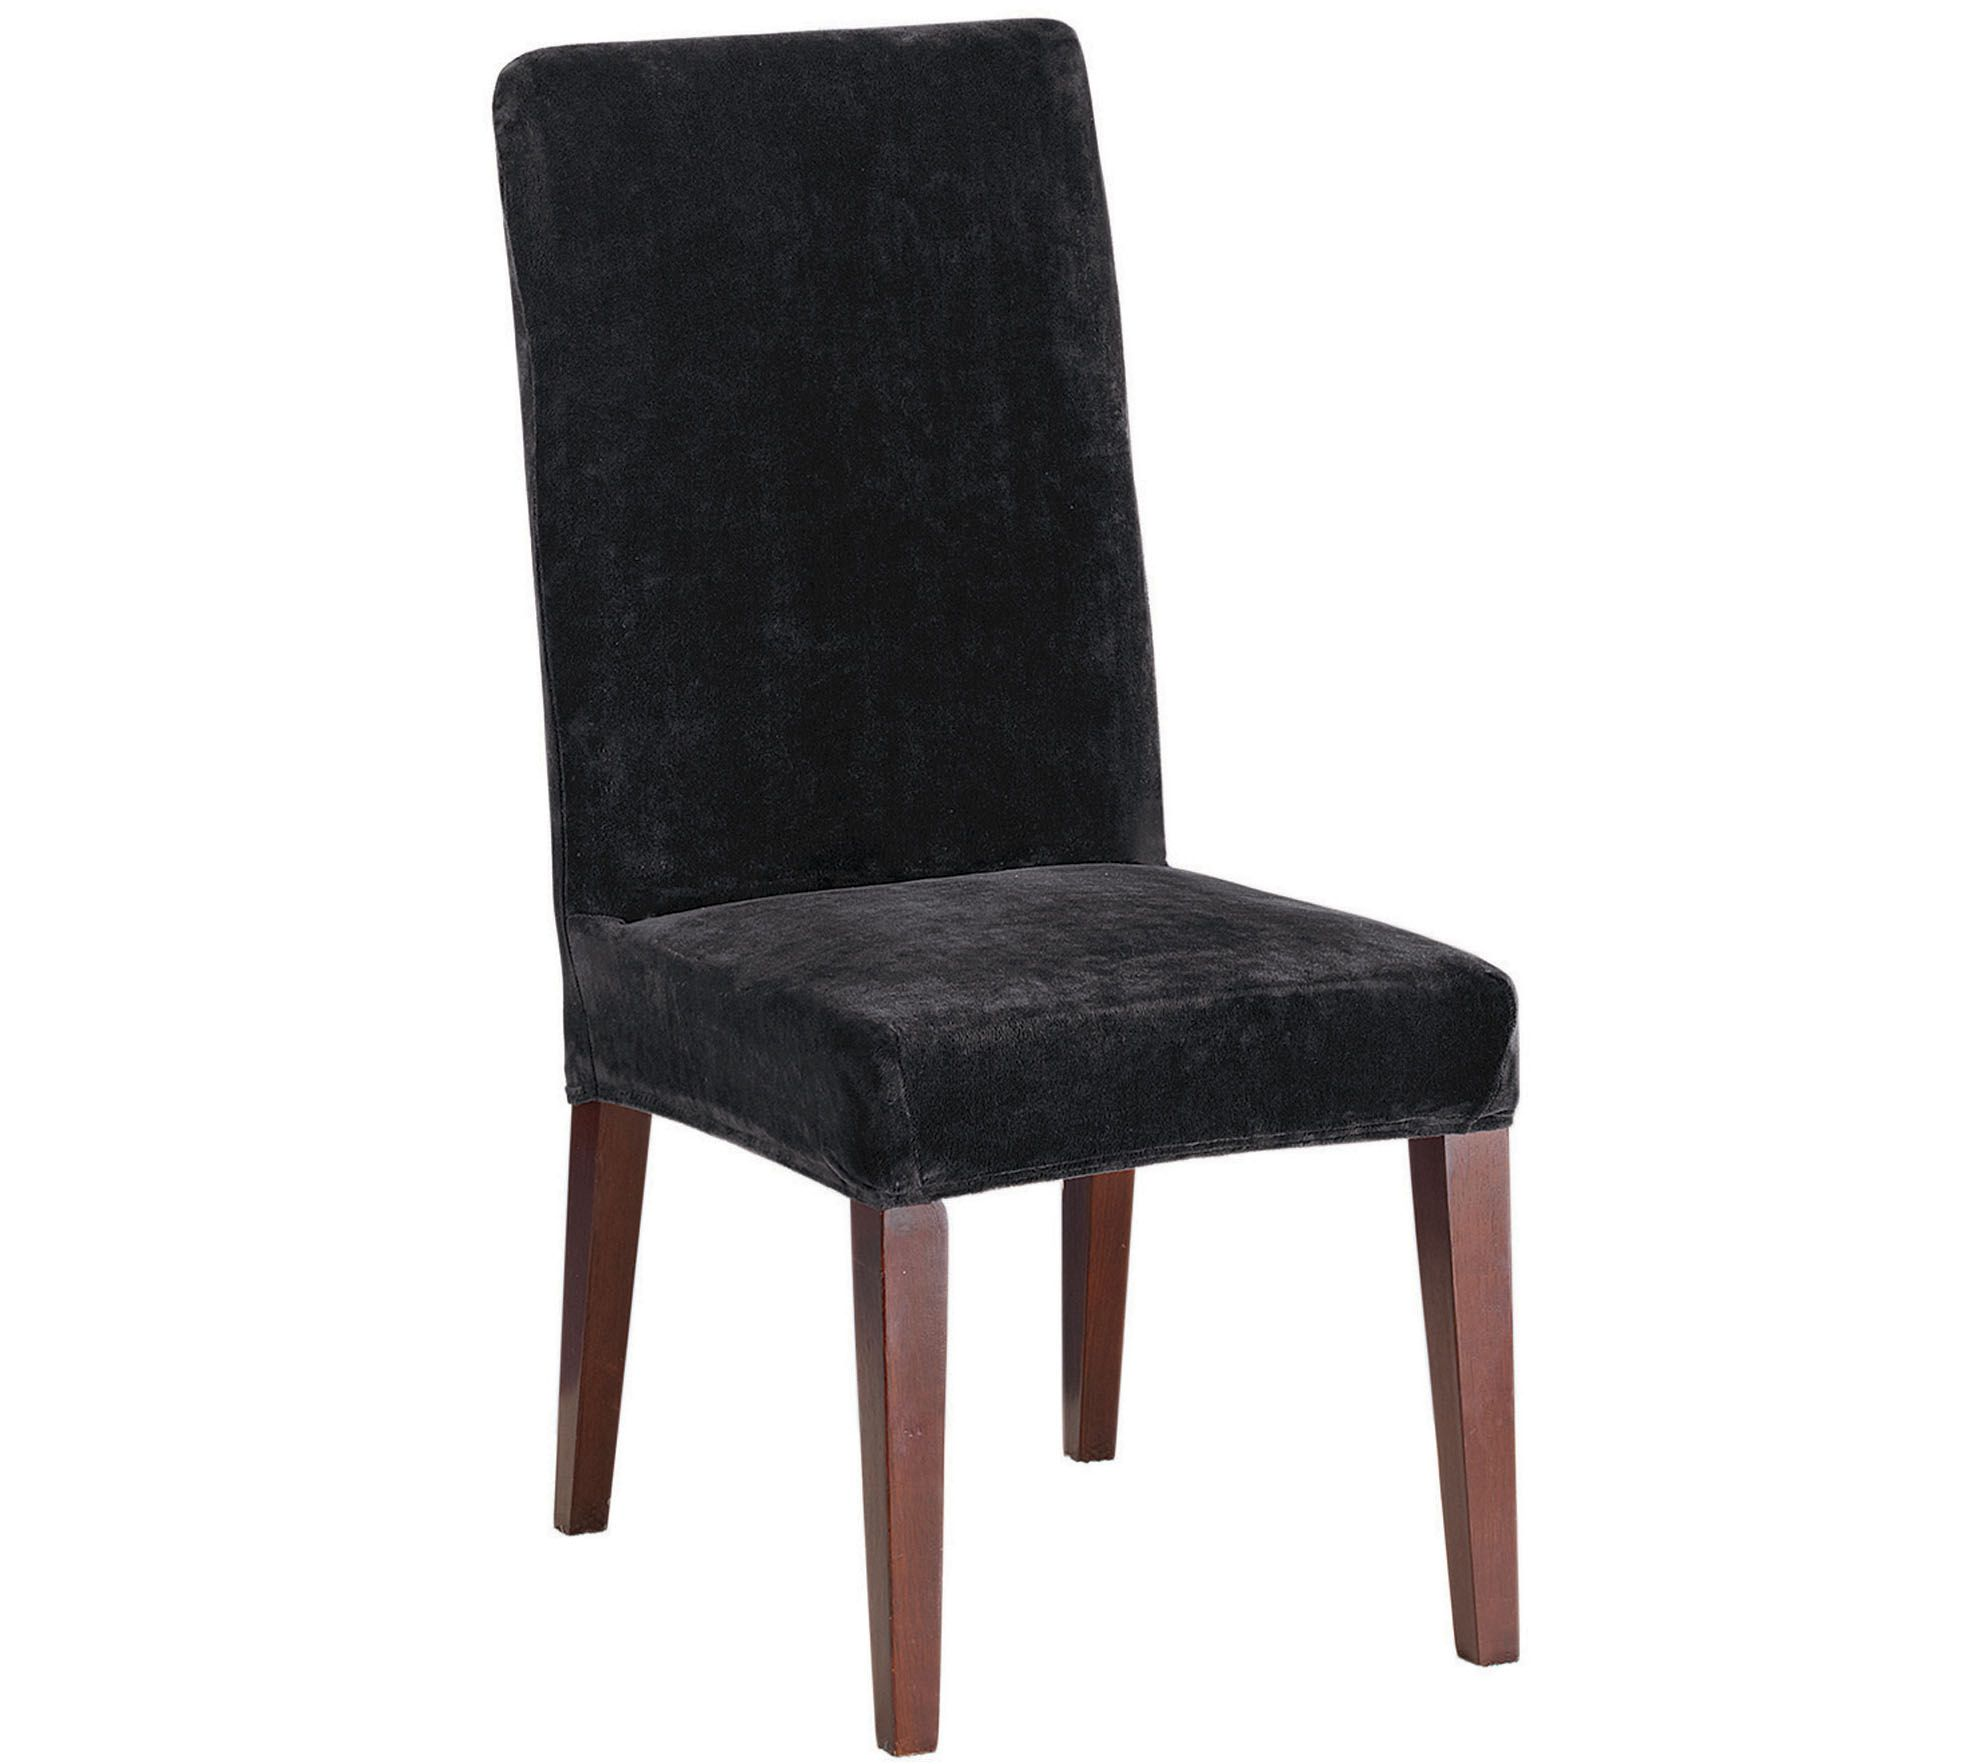 Sure Fit Stretch Plush Short Dining Chair Slipcover QVCcom : h289799 from www.qvc.com size 1984 x 1764 jpeg 166kB